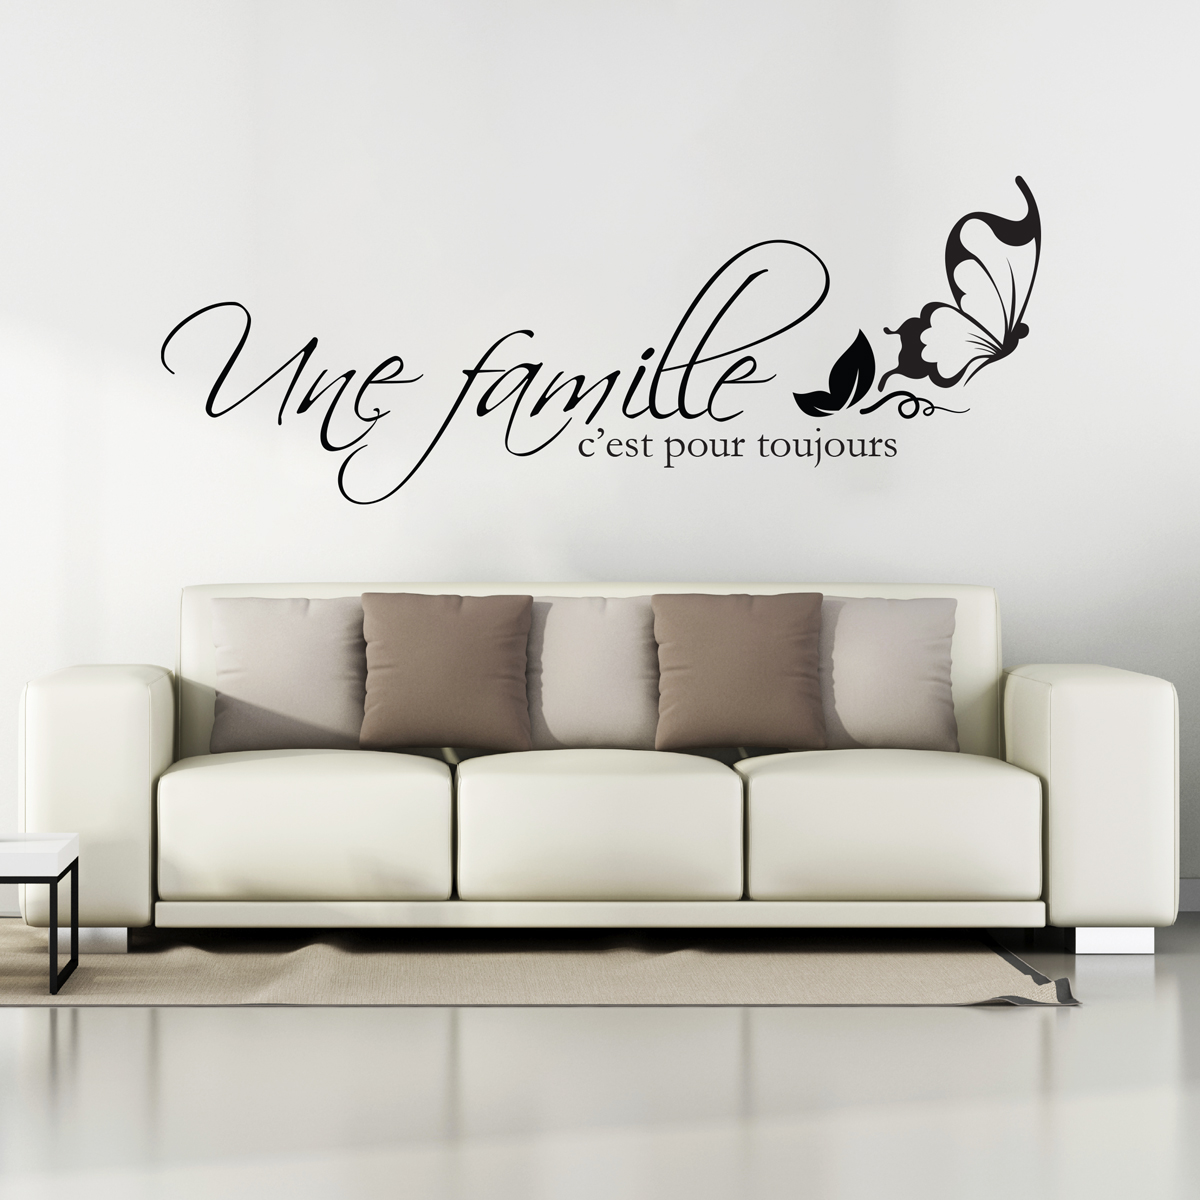 sticker citation une famille c 39 est pour toujours stickers citations fran ais ambiance sticker. Black Bedroom Furniture Sets. Home Design Ideas